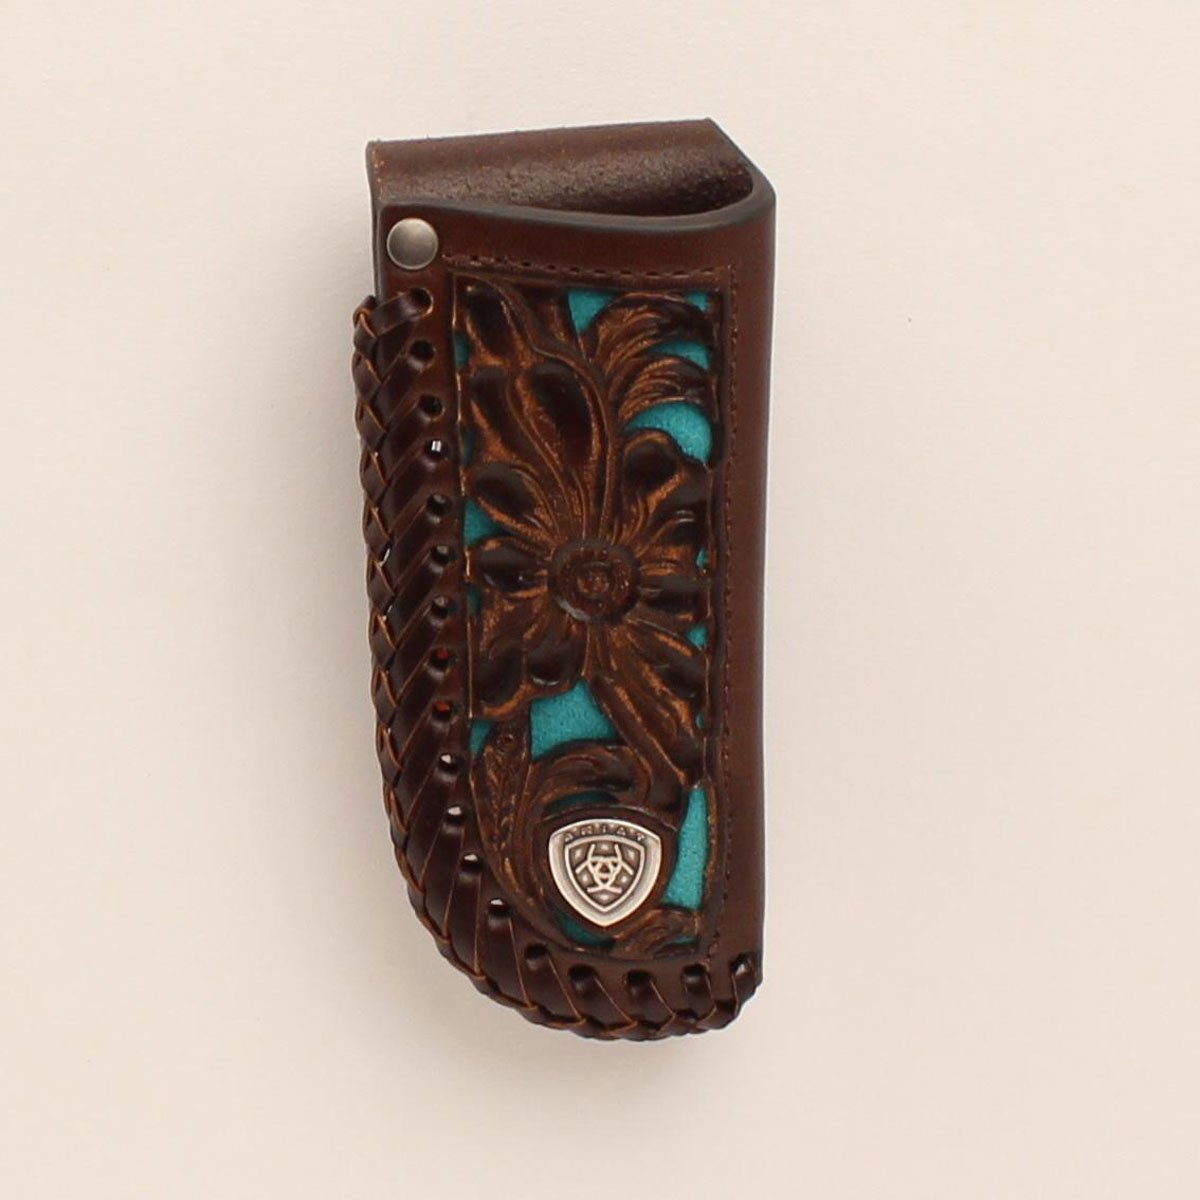 Floral with Turquoise Inlay Leather Knife Sheath from Ariat